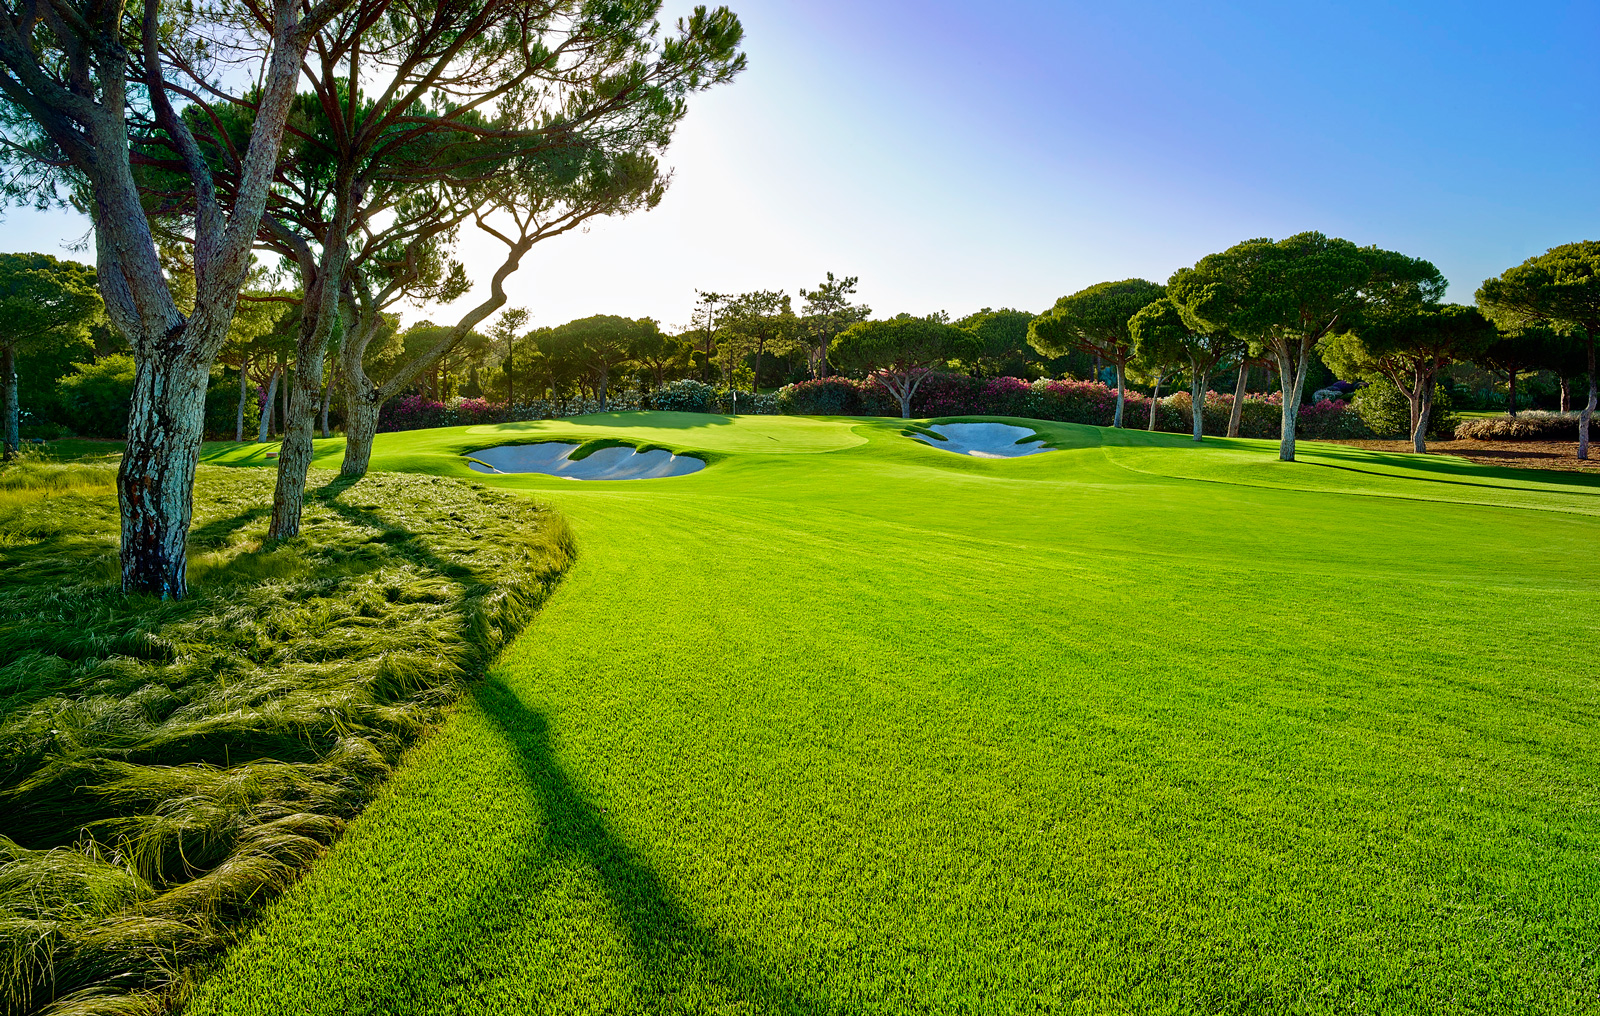 Quinta-do-lago-website-1